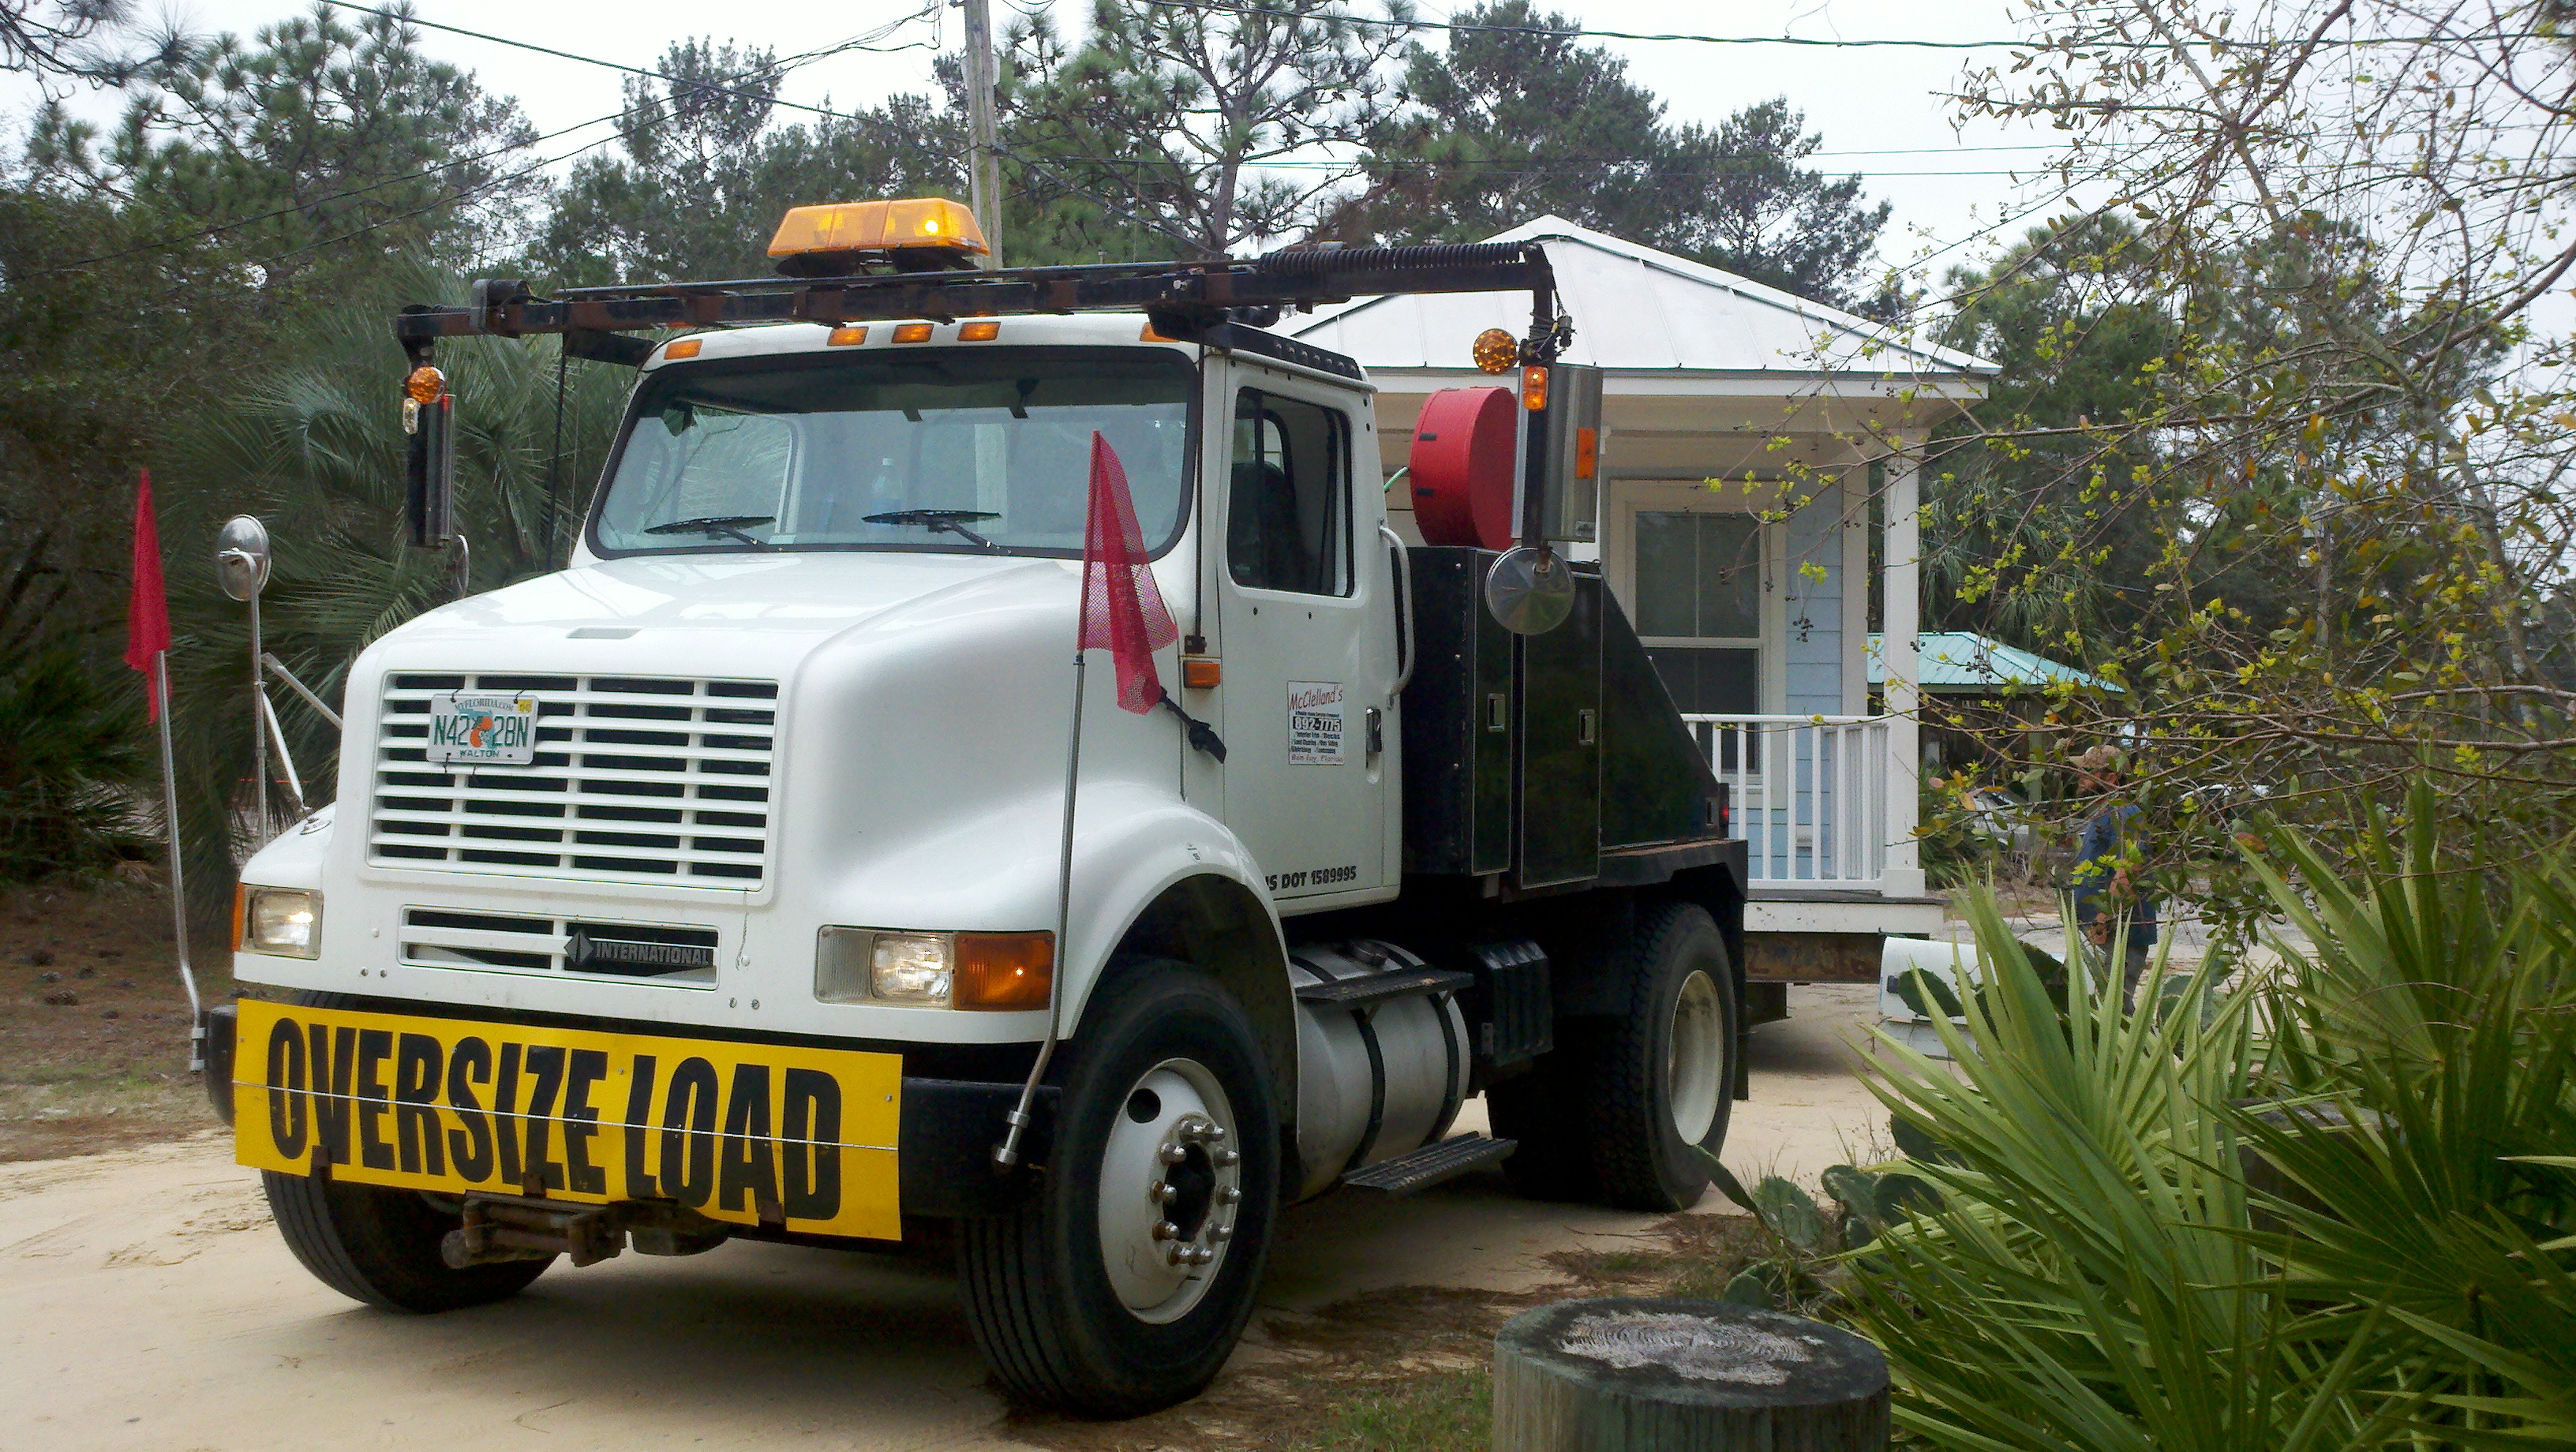 Cordial A Truck 2012 02 29 10 57 41 945 Moving A Mobile Home Onto Land Moving A Mobile Home curbed Moving A Mobile Home